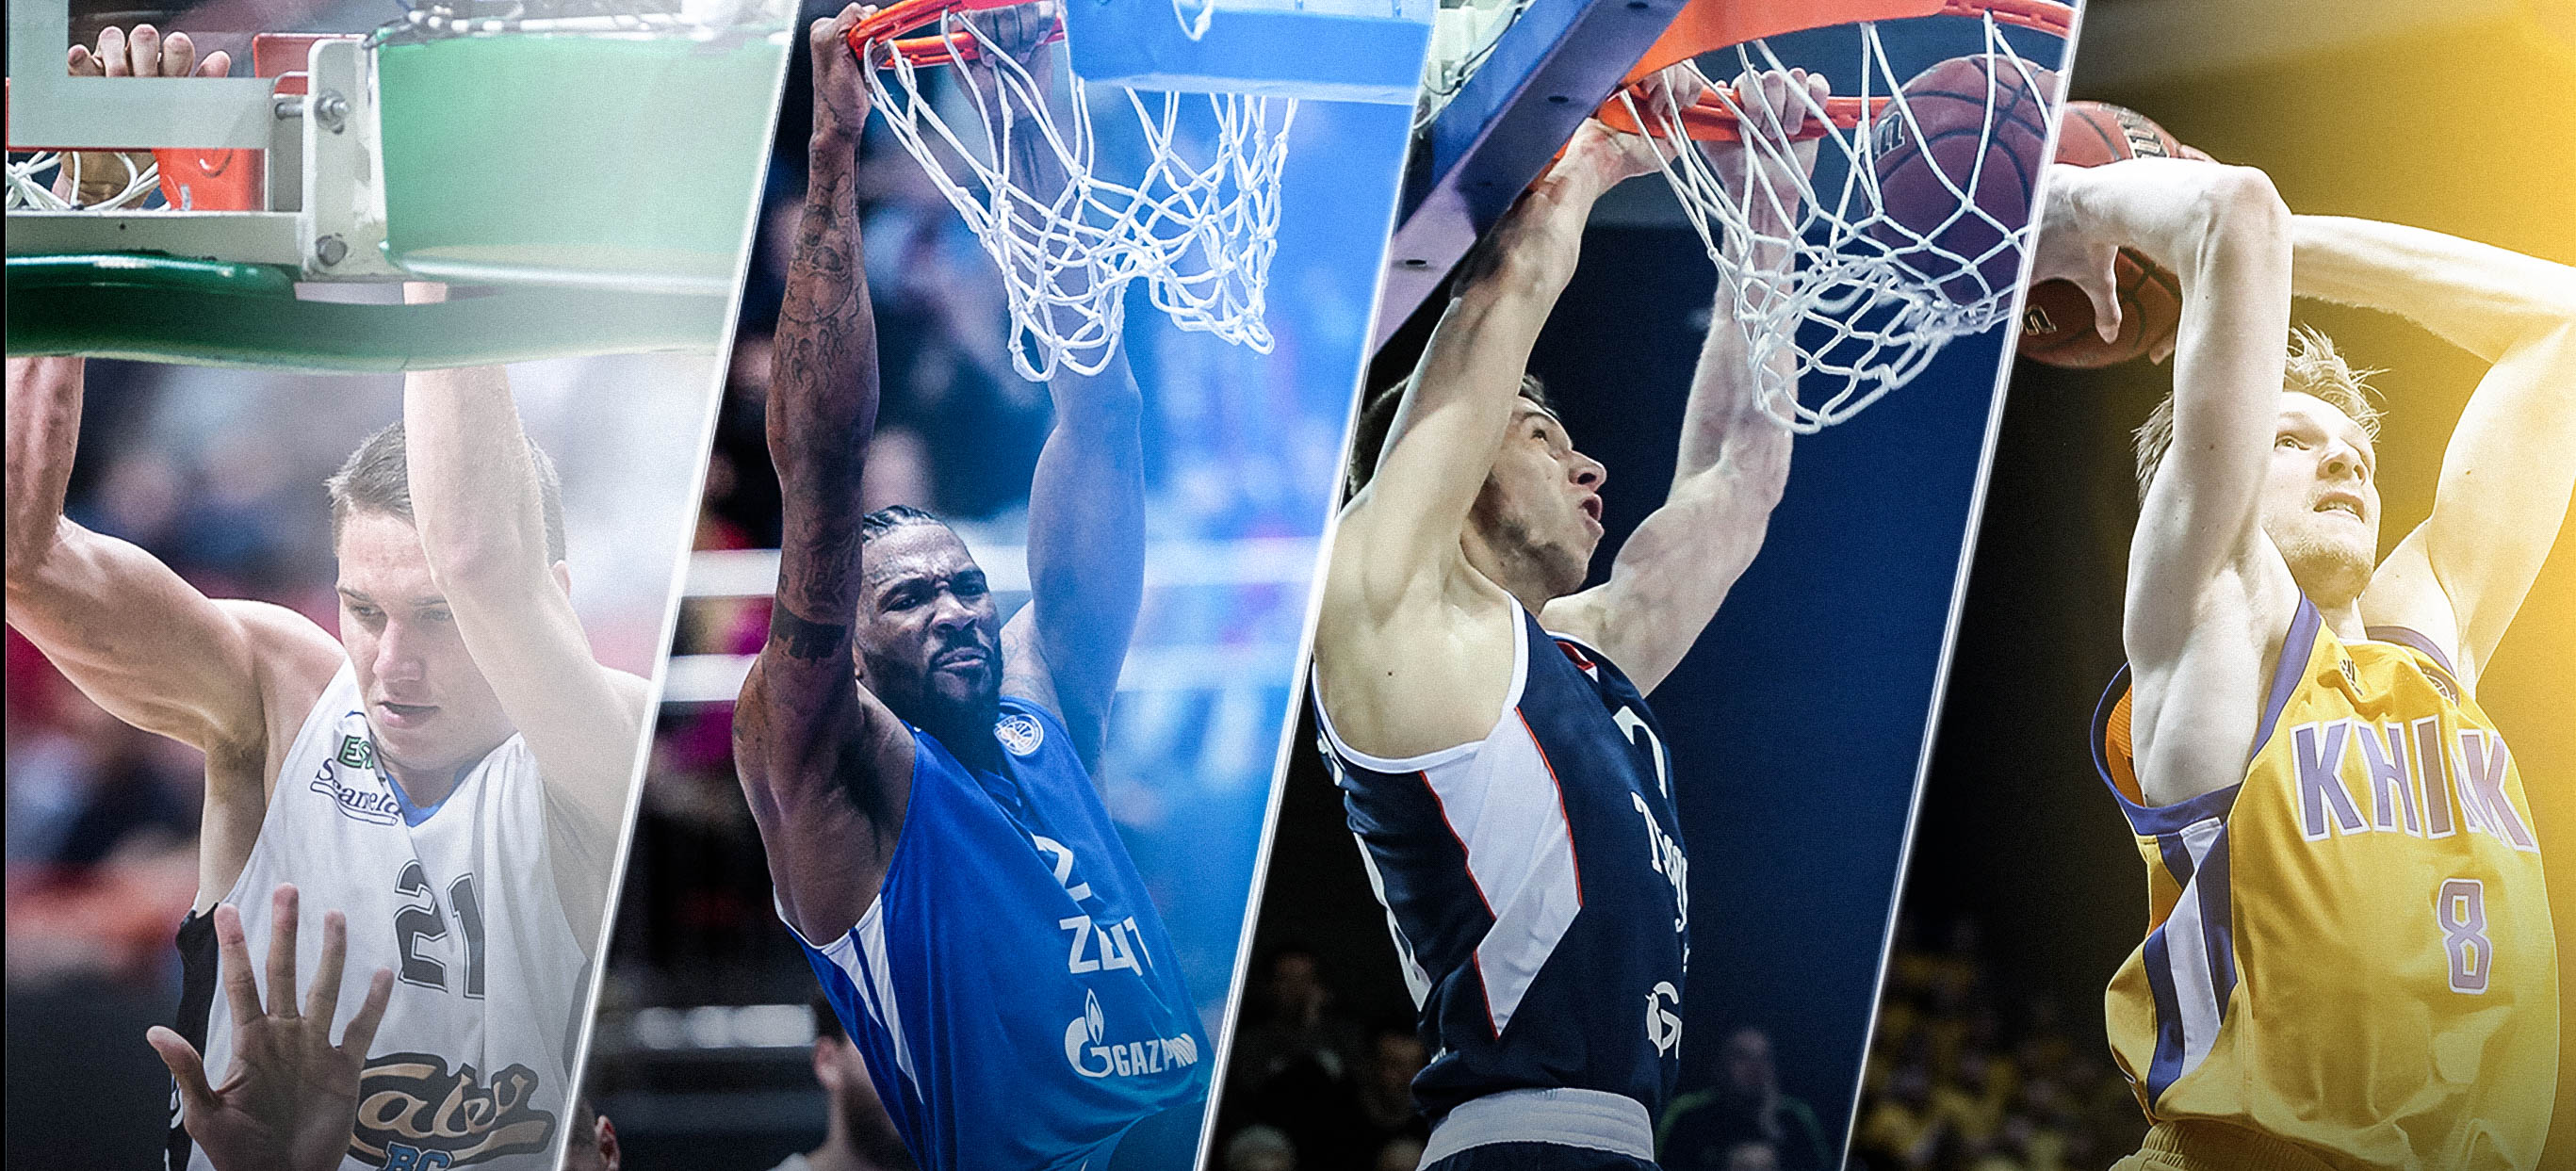 Reynolds, Joesaar, Liutych, Zaitcev Selected For Slam Dunk Contest